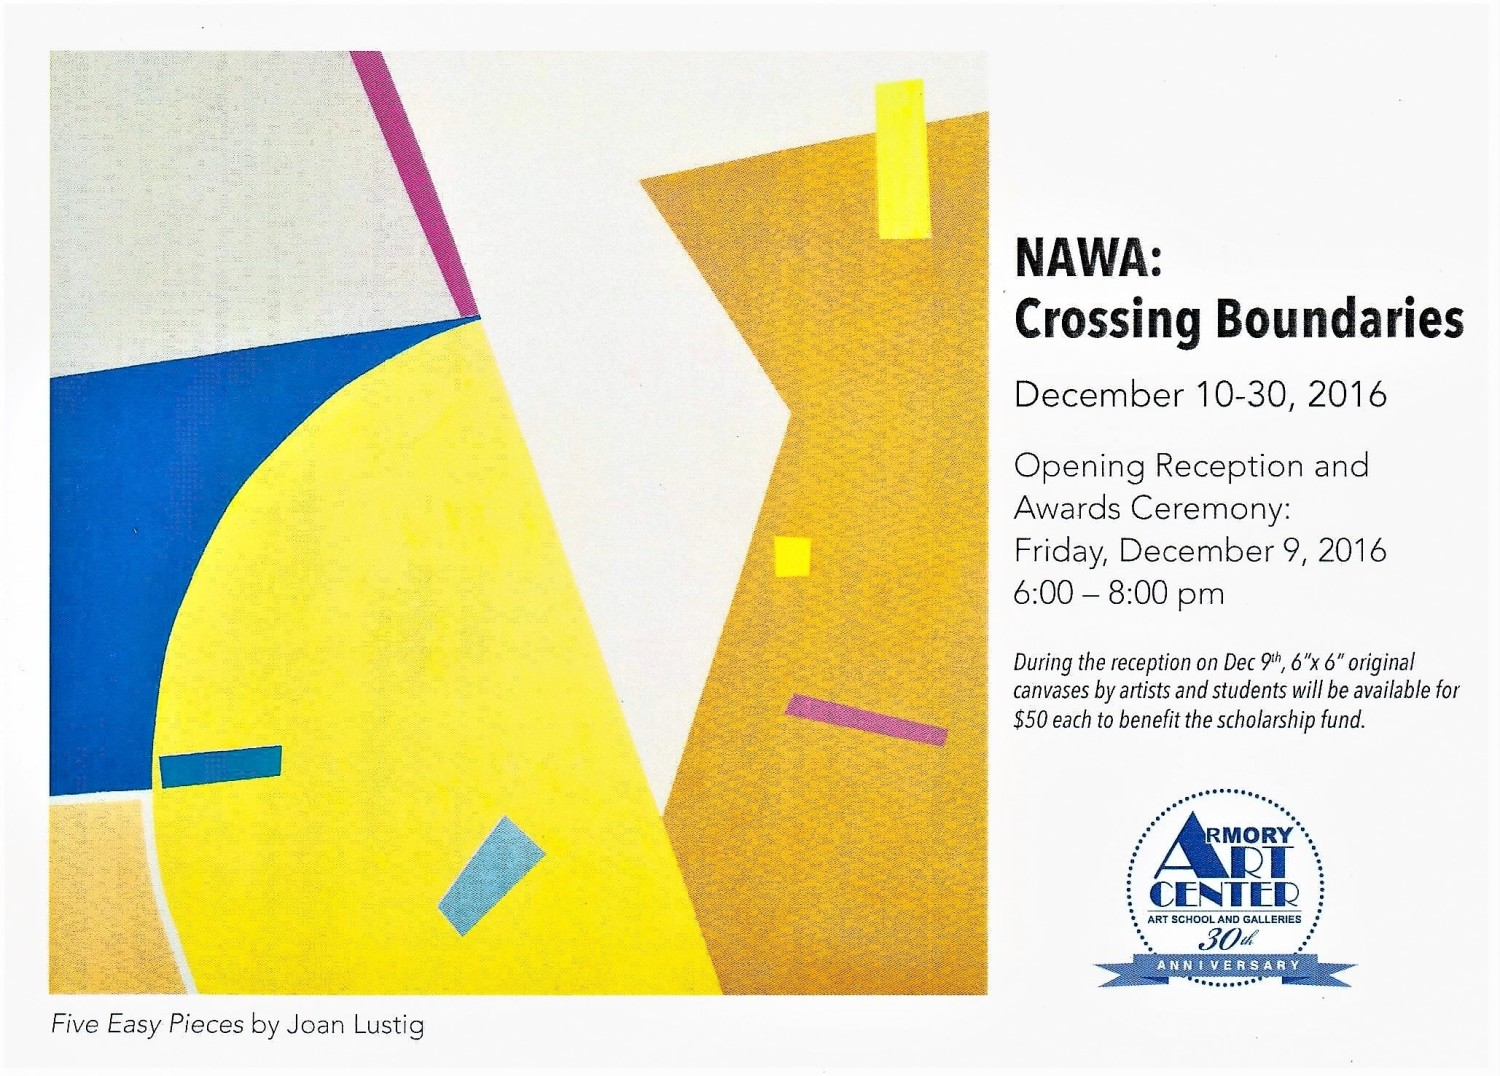 NAWA: Crossing Boundaries